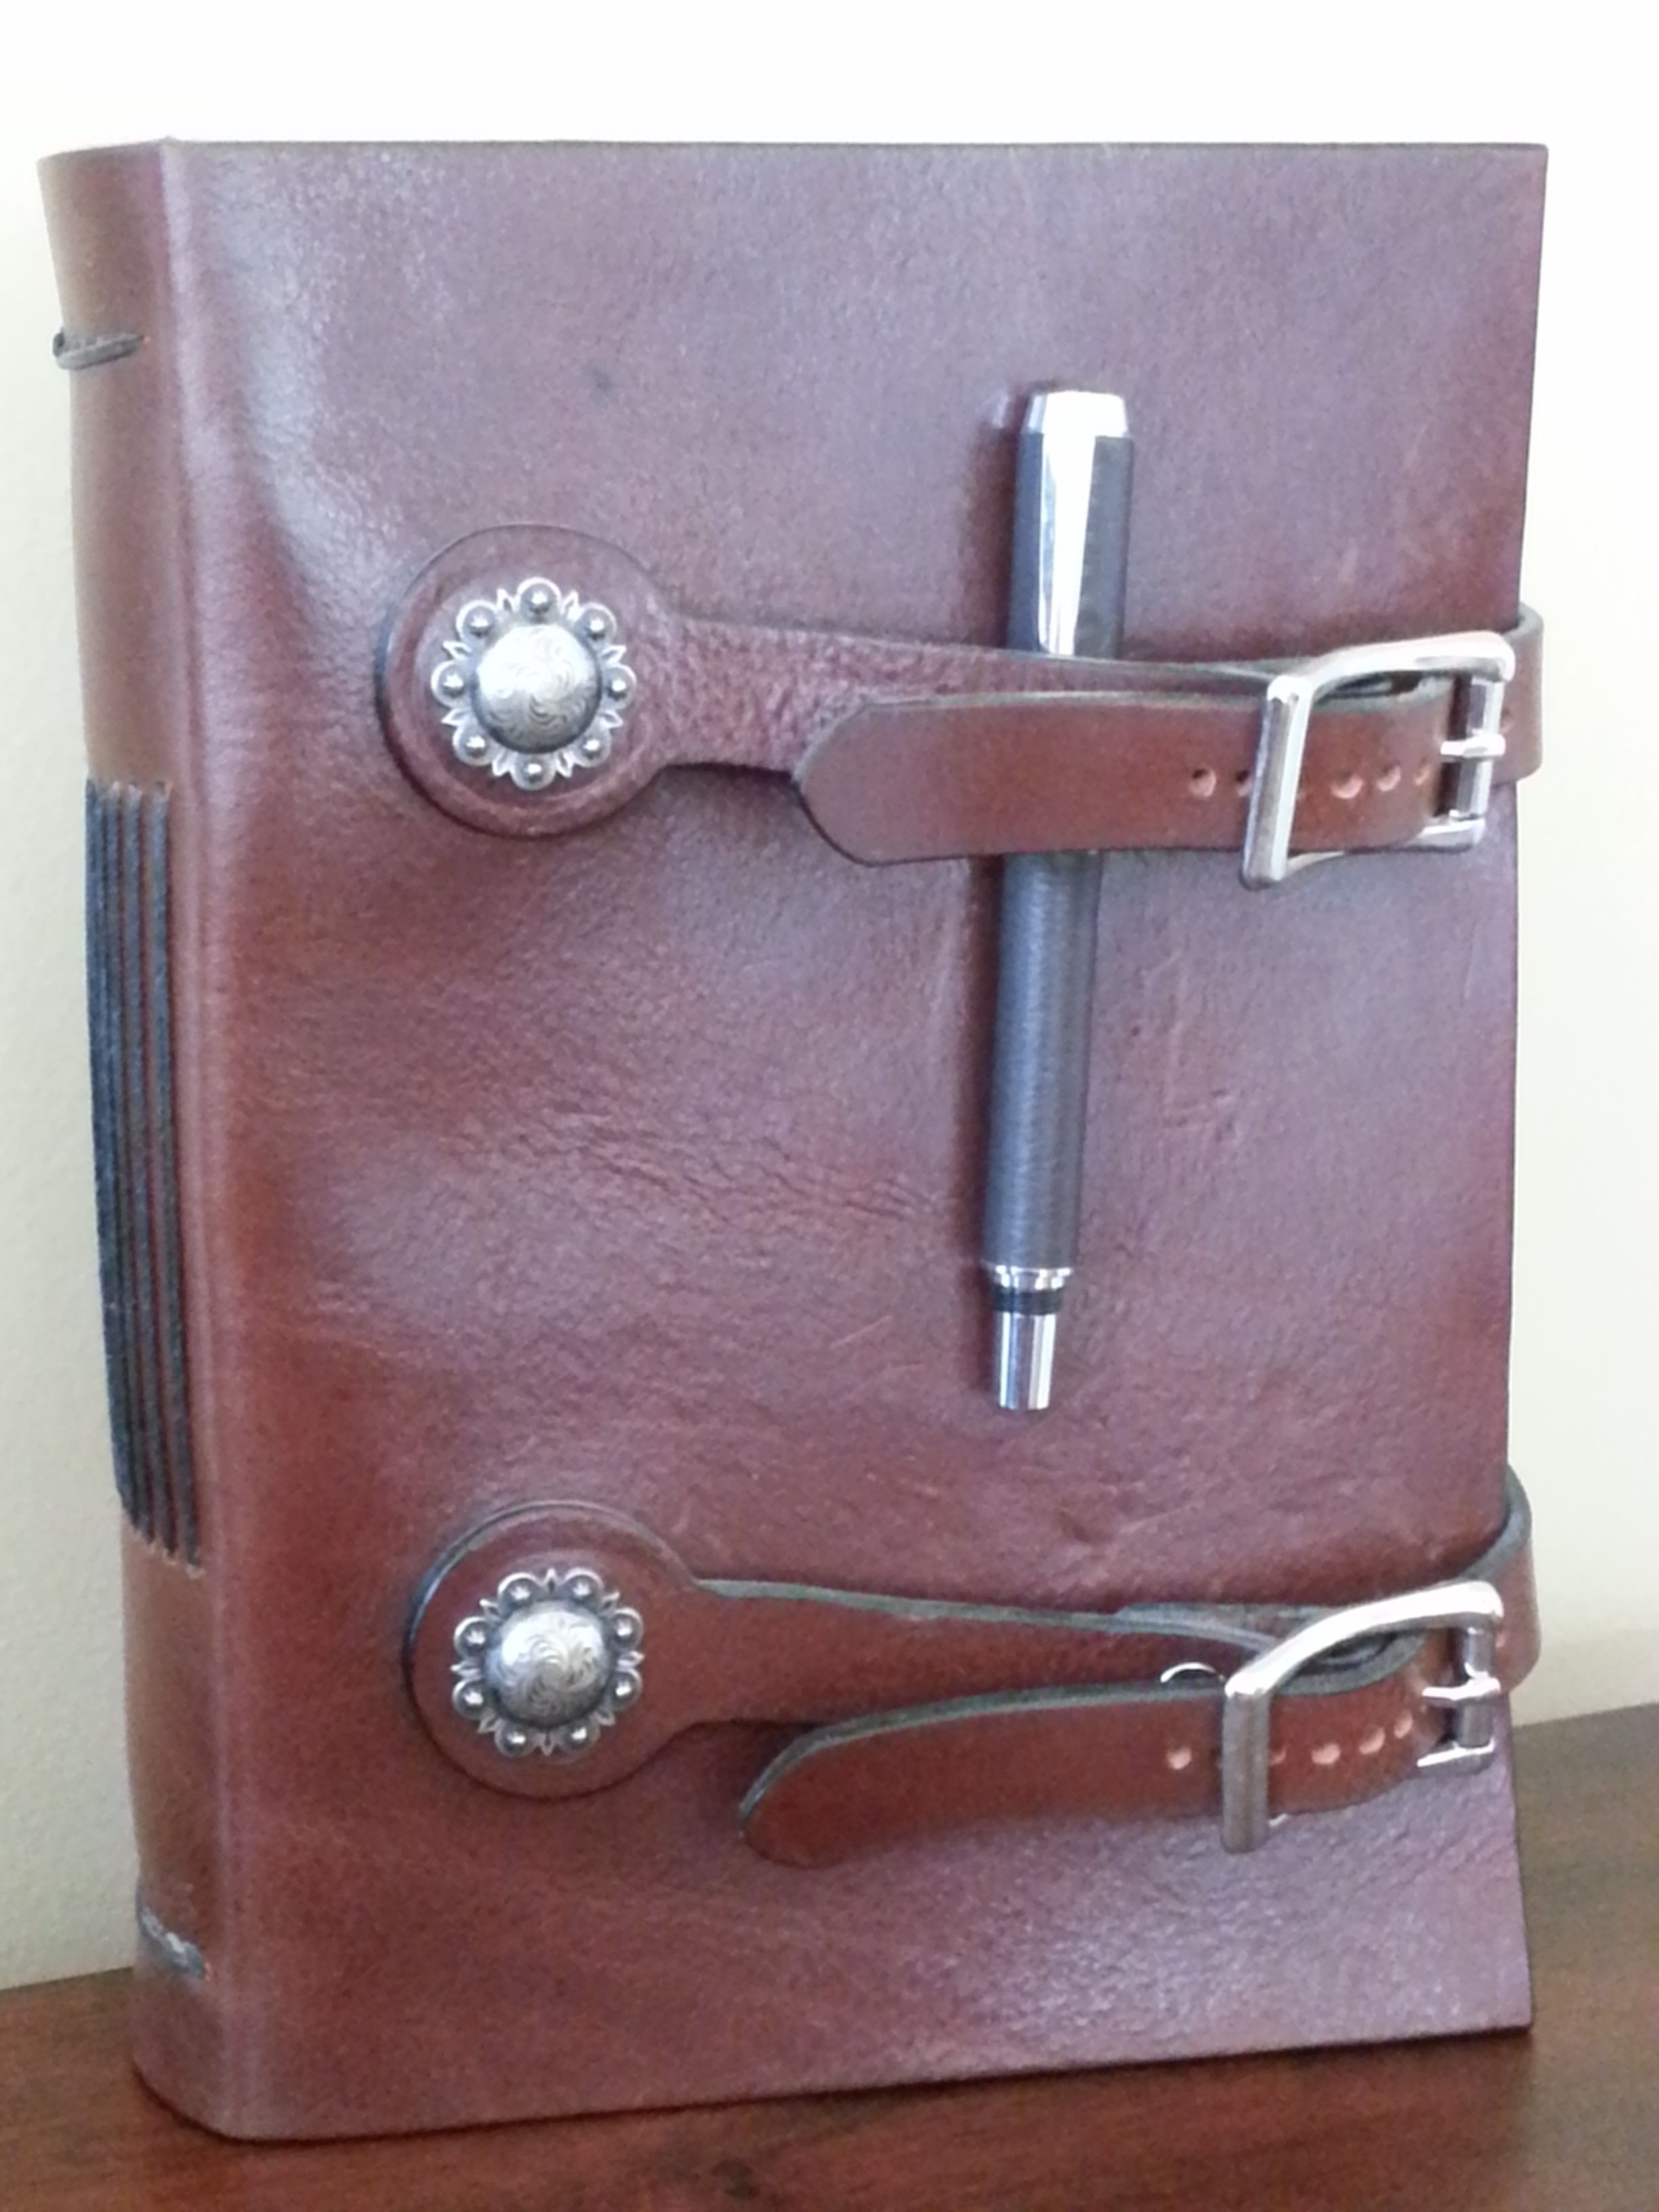 A custom leather journal. A romantic gift idea that is